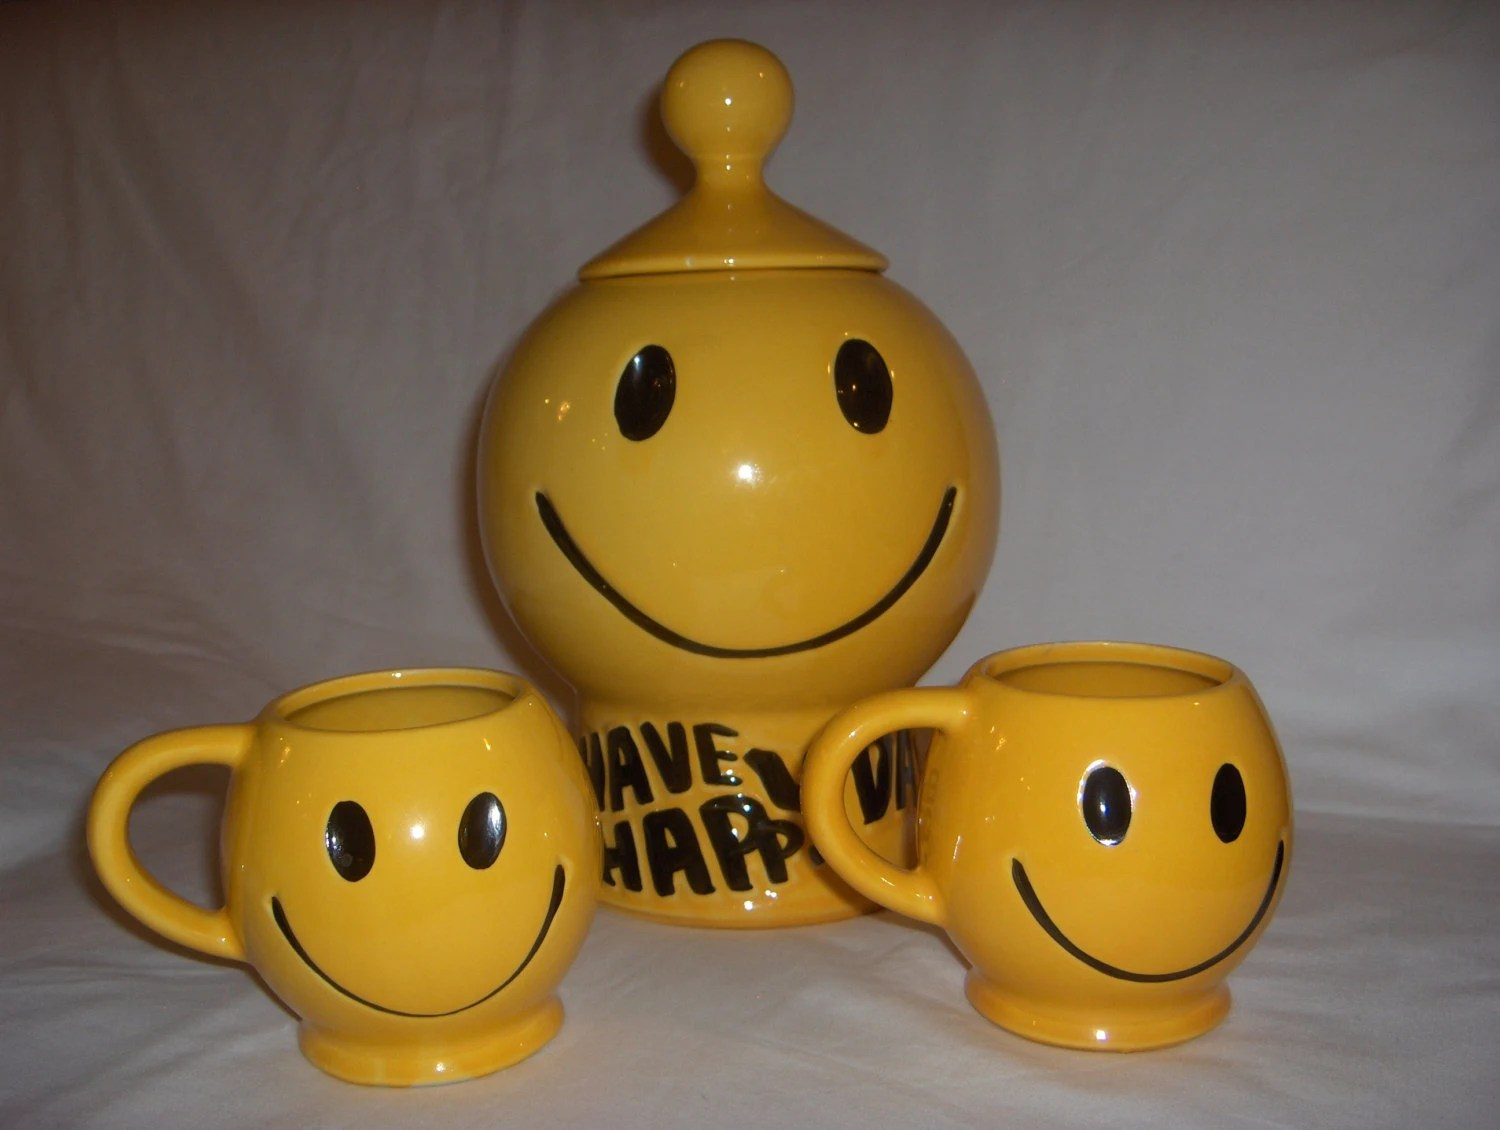 70s Mccoy Smiley Face Cookie Jar With Two Matching Mugs For